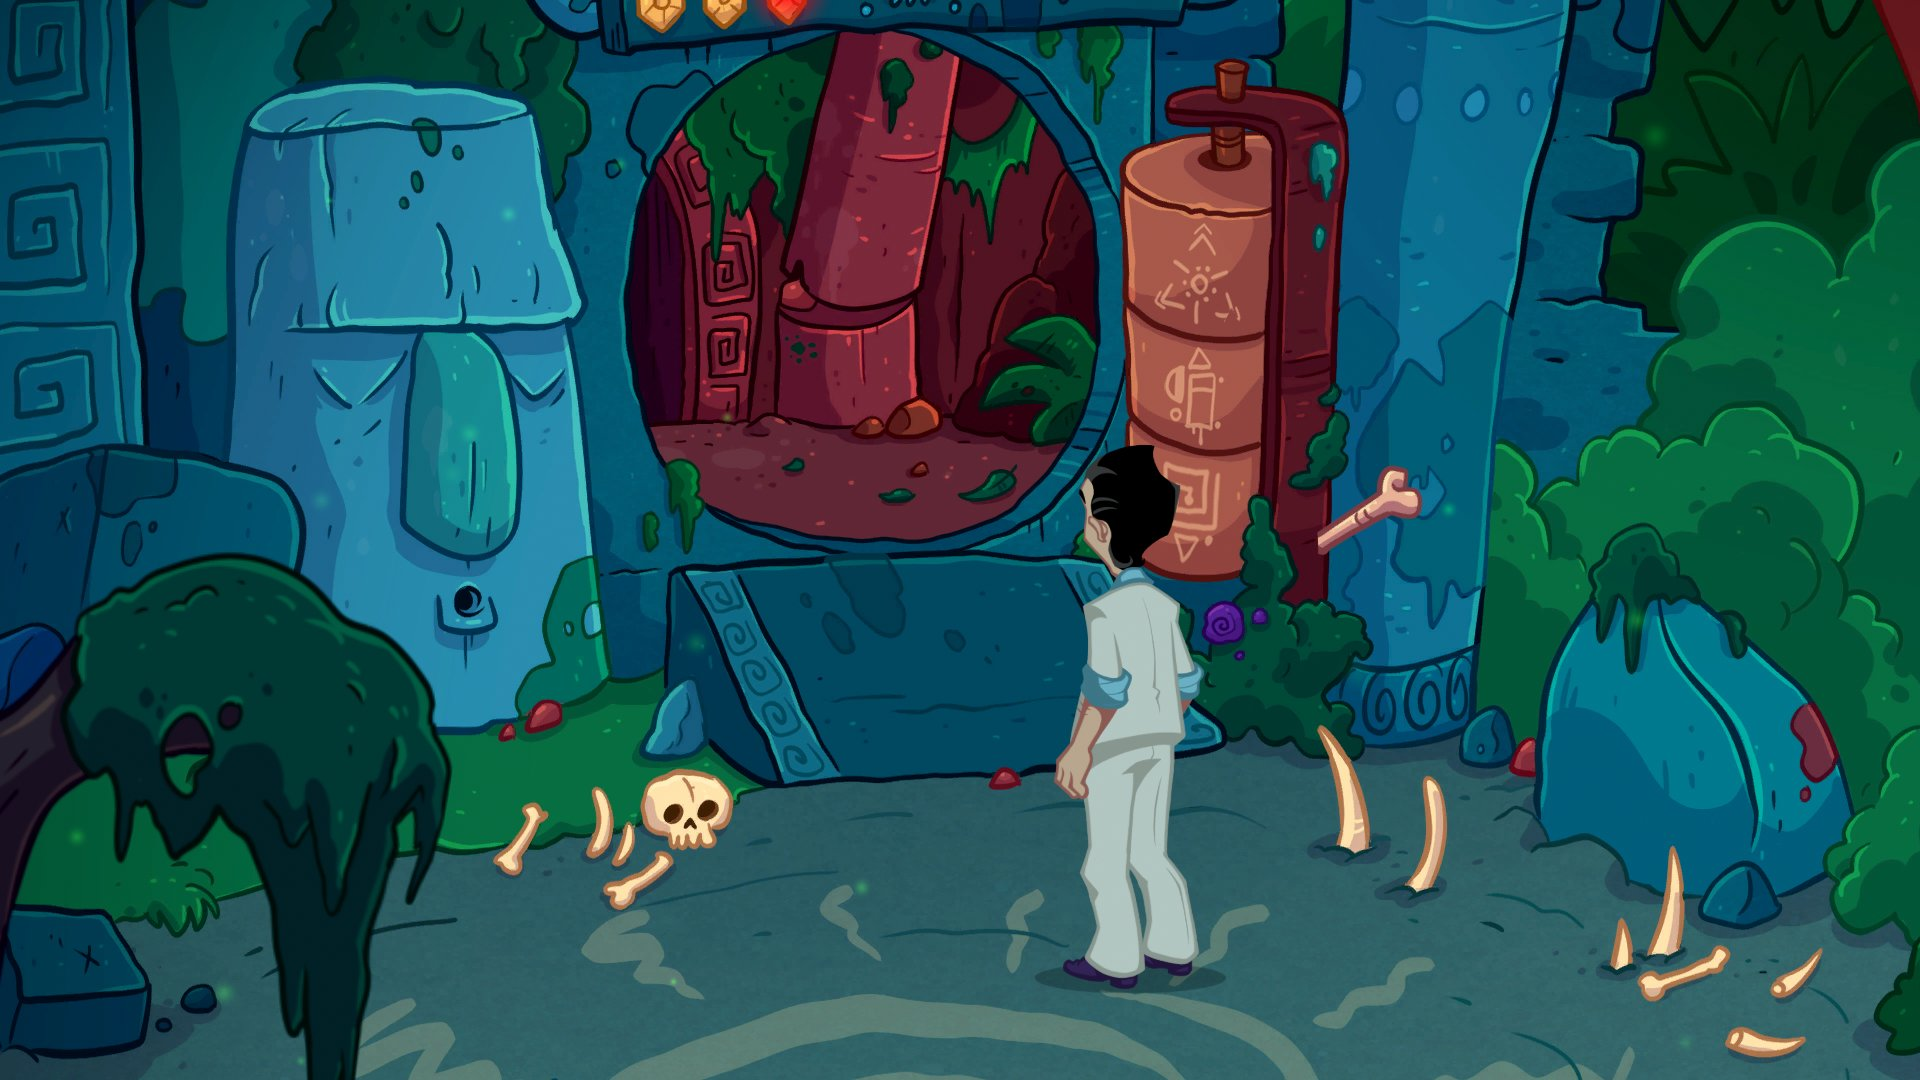 A screenshot of Larry approaching a cave entrance, littered with bones.